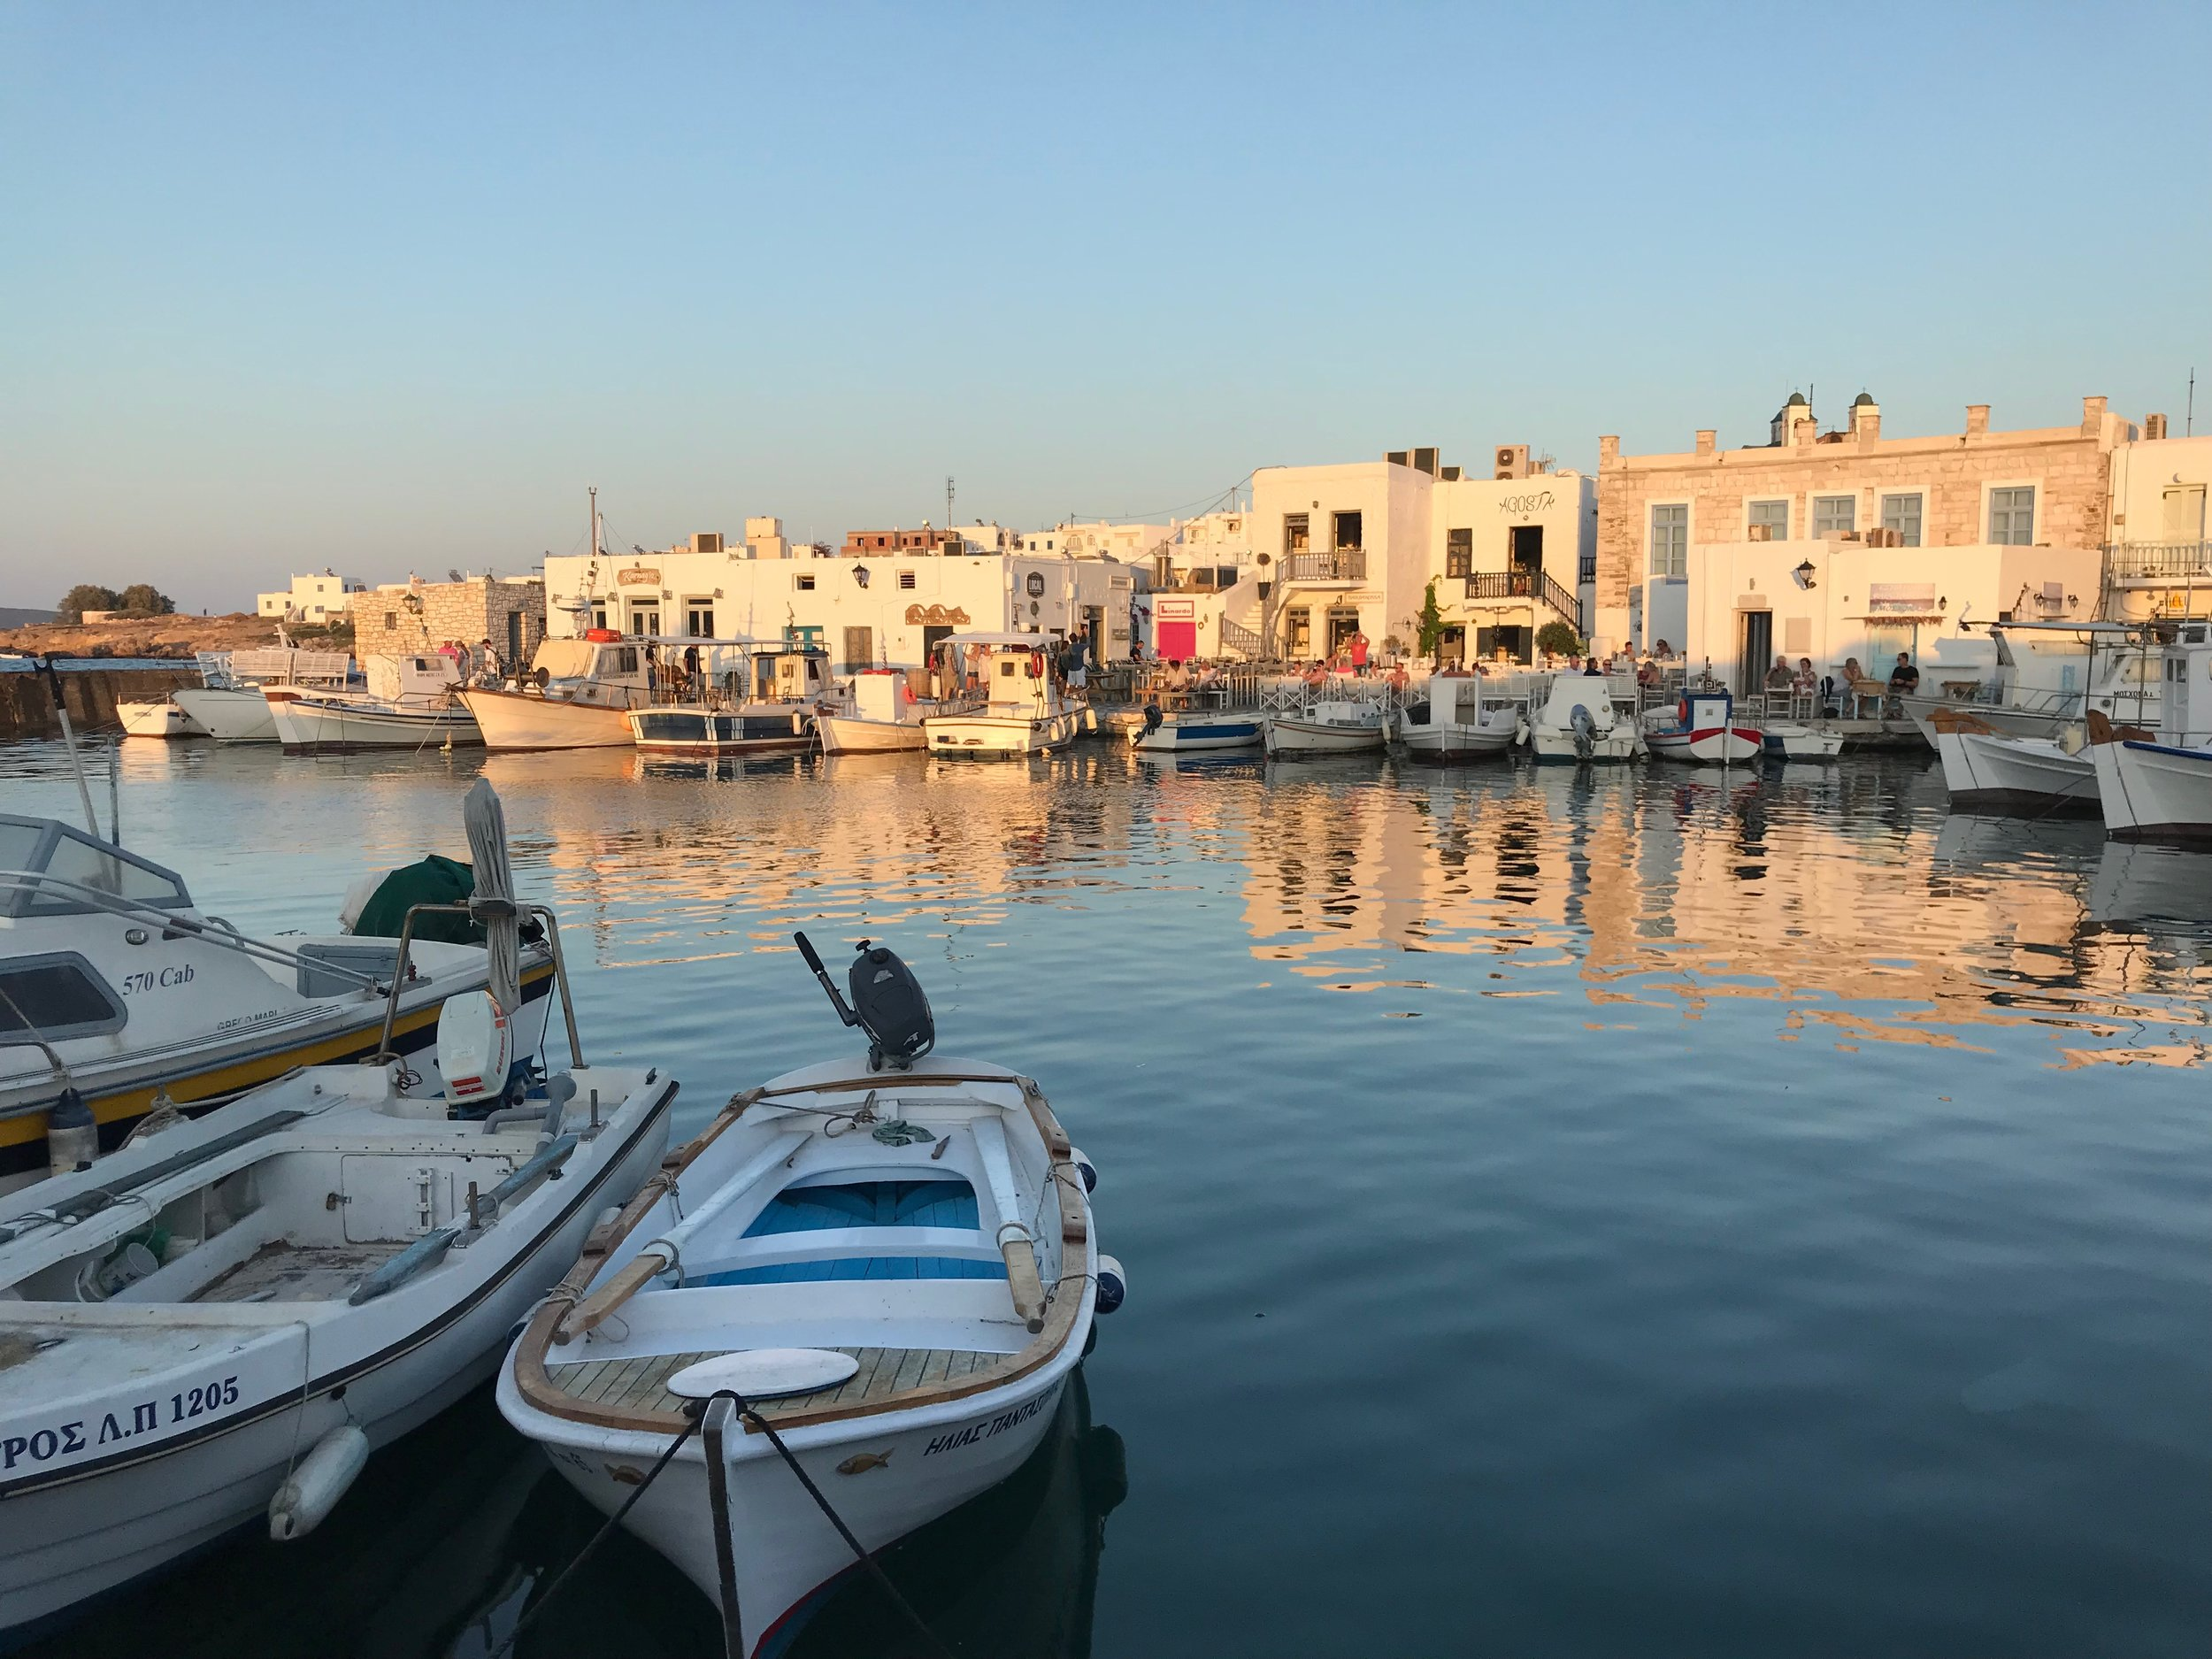 The village of Naousa in Paros…we enjoyed a delicious meal at Barbarossa Restaurant, right on the water.